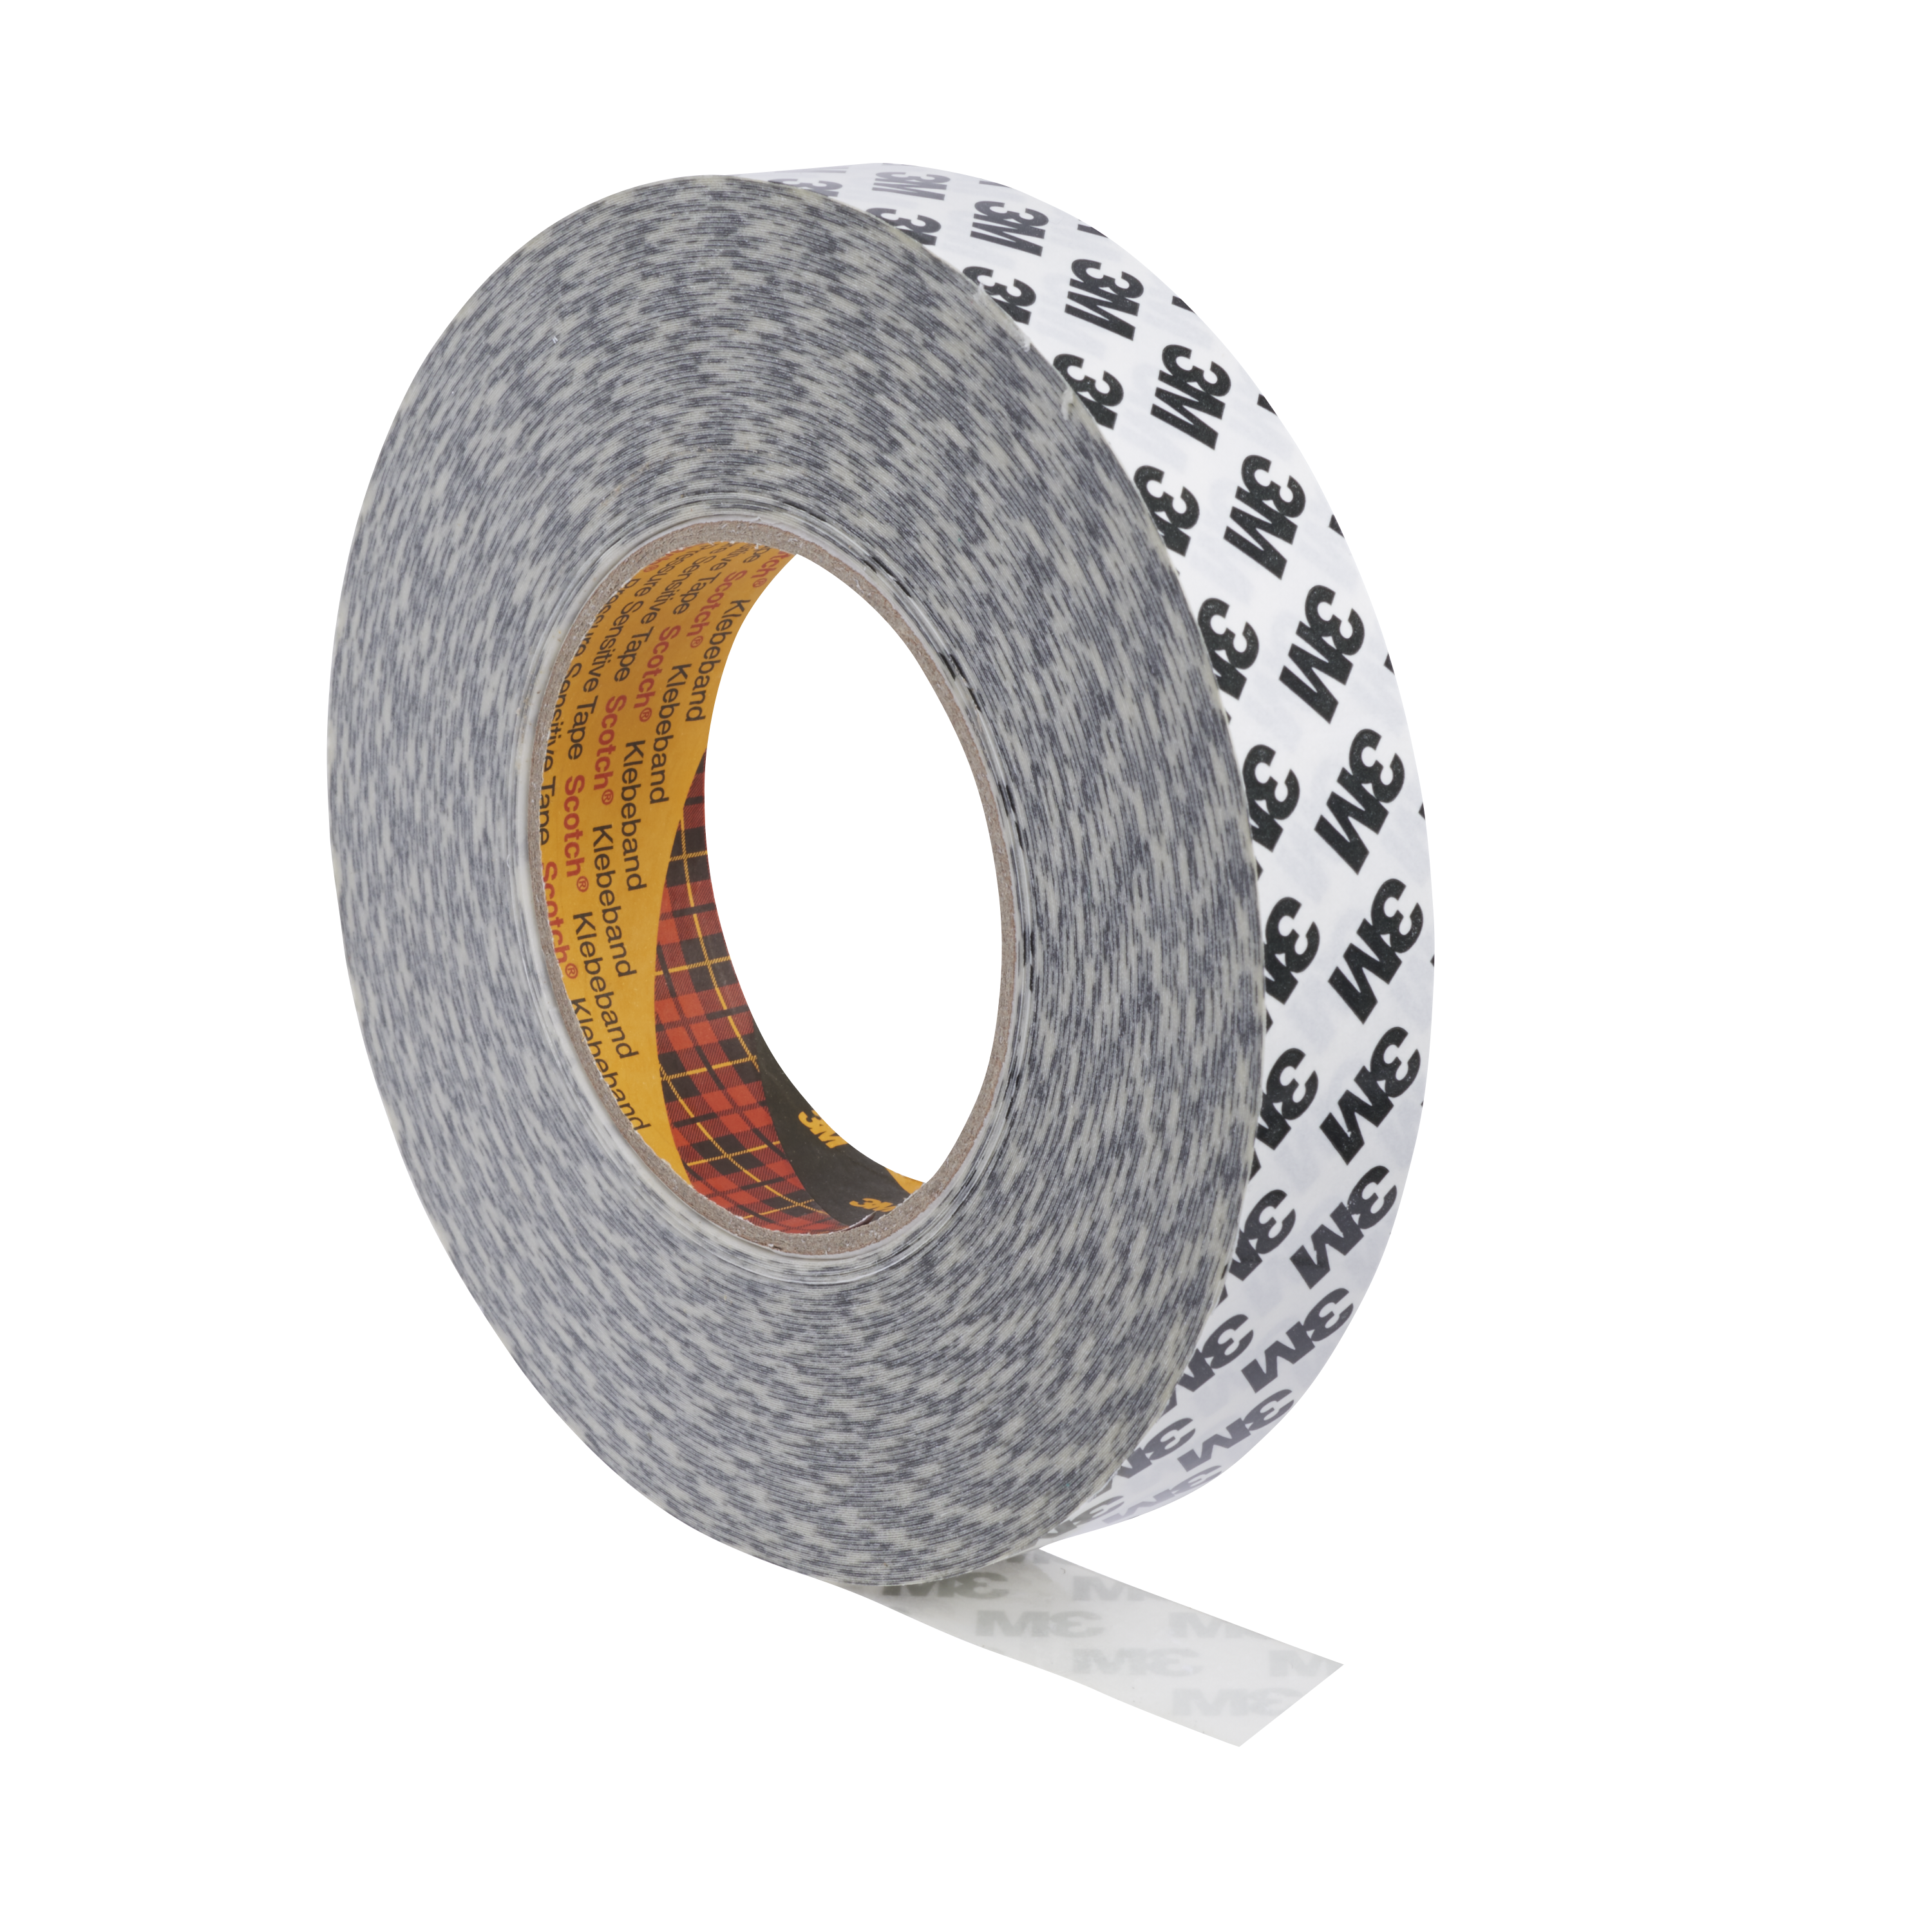 3M Double Coated Carpet Tape 9191 / Double sided adhesive tape for ...